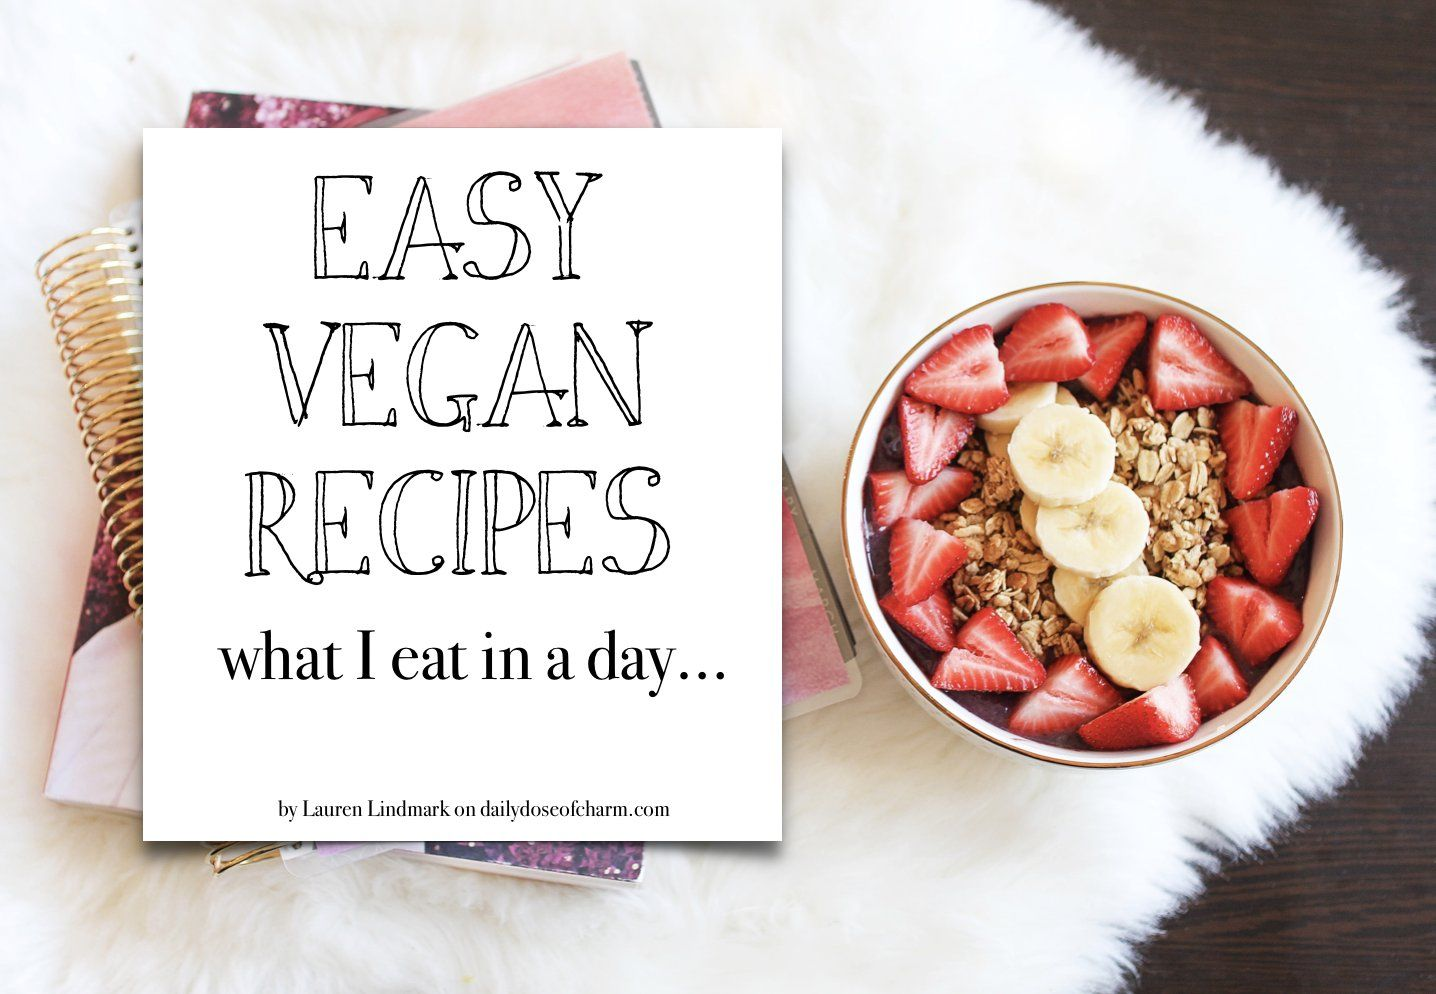 Vegan Recipes! What I eat in a day healthy and plant based! Acai Bowl, Black bean and corn rice, peanut butter apples, and potatoes with Sriracha aioli! By Lauren Lindmark on daily dose of charm dailydoseofcharm.com